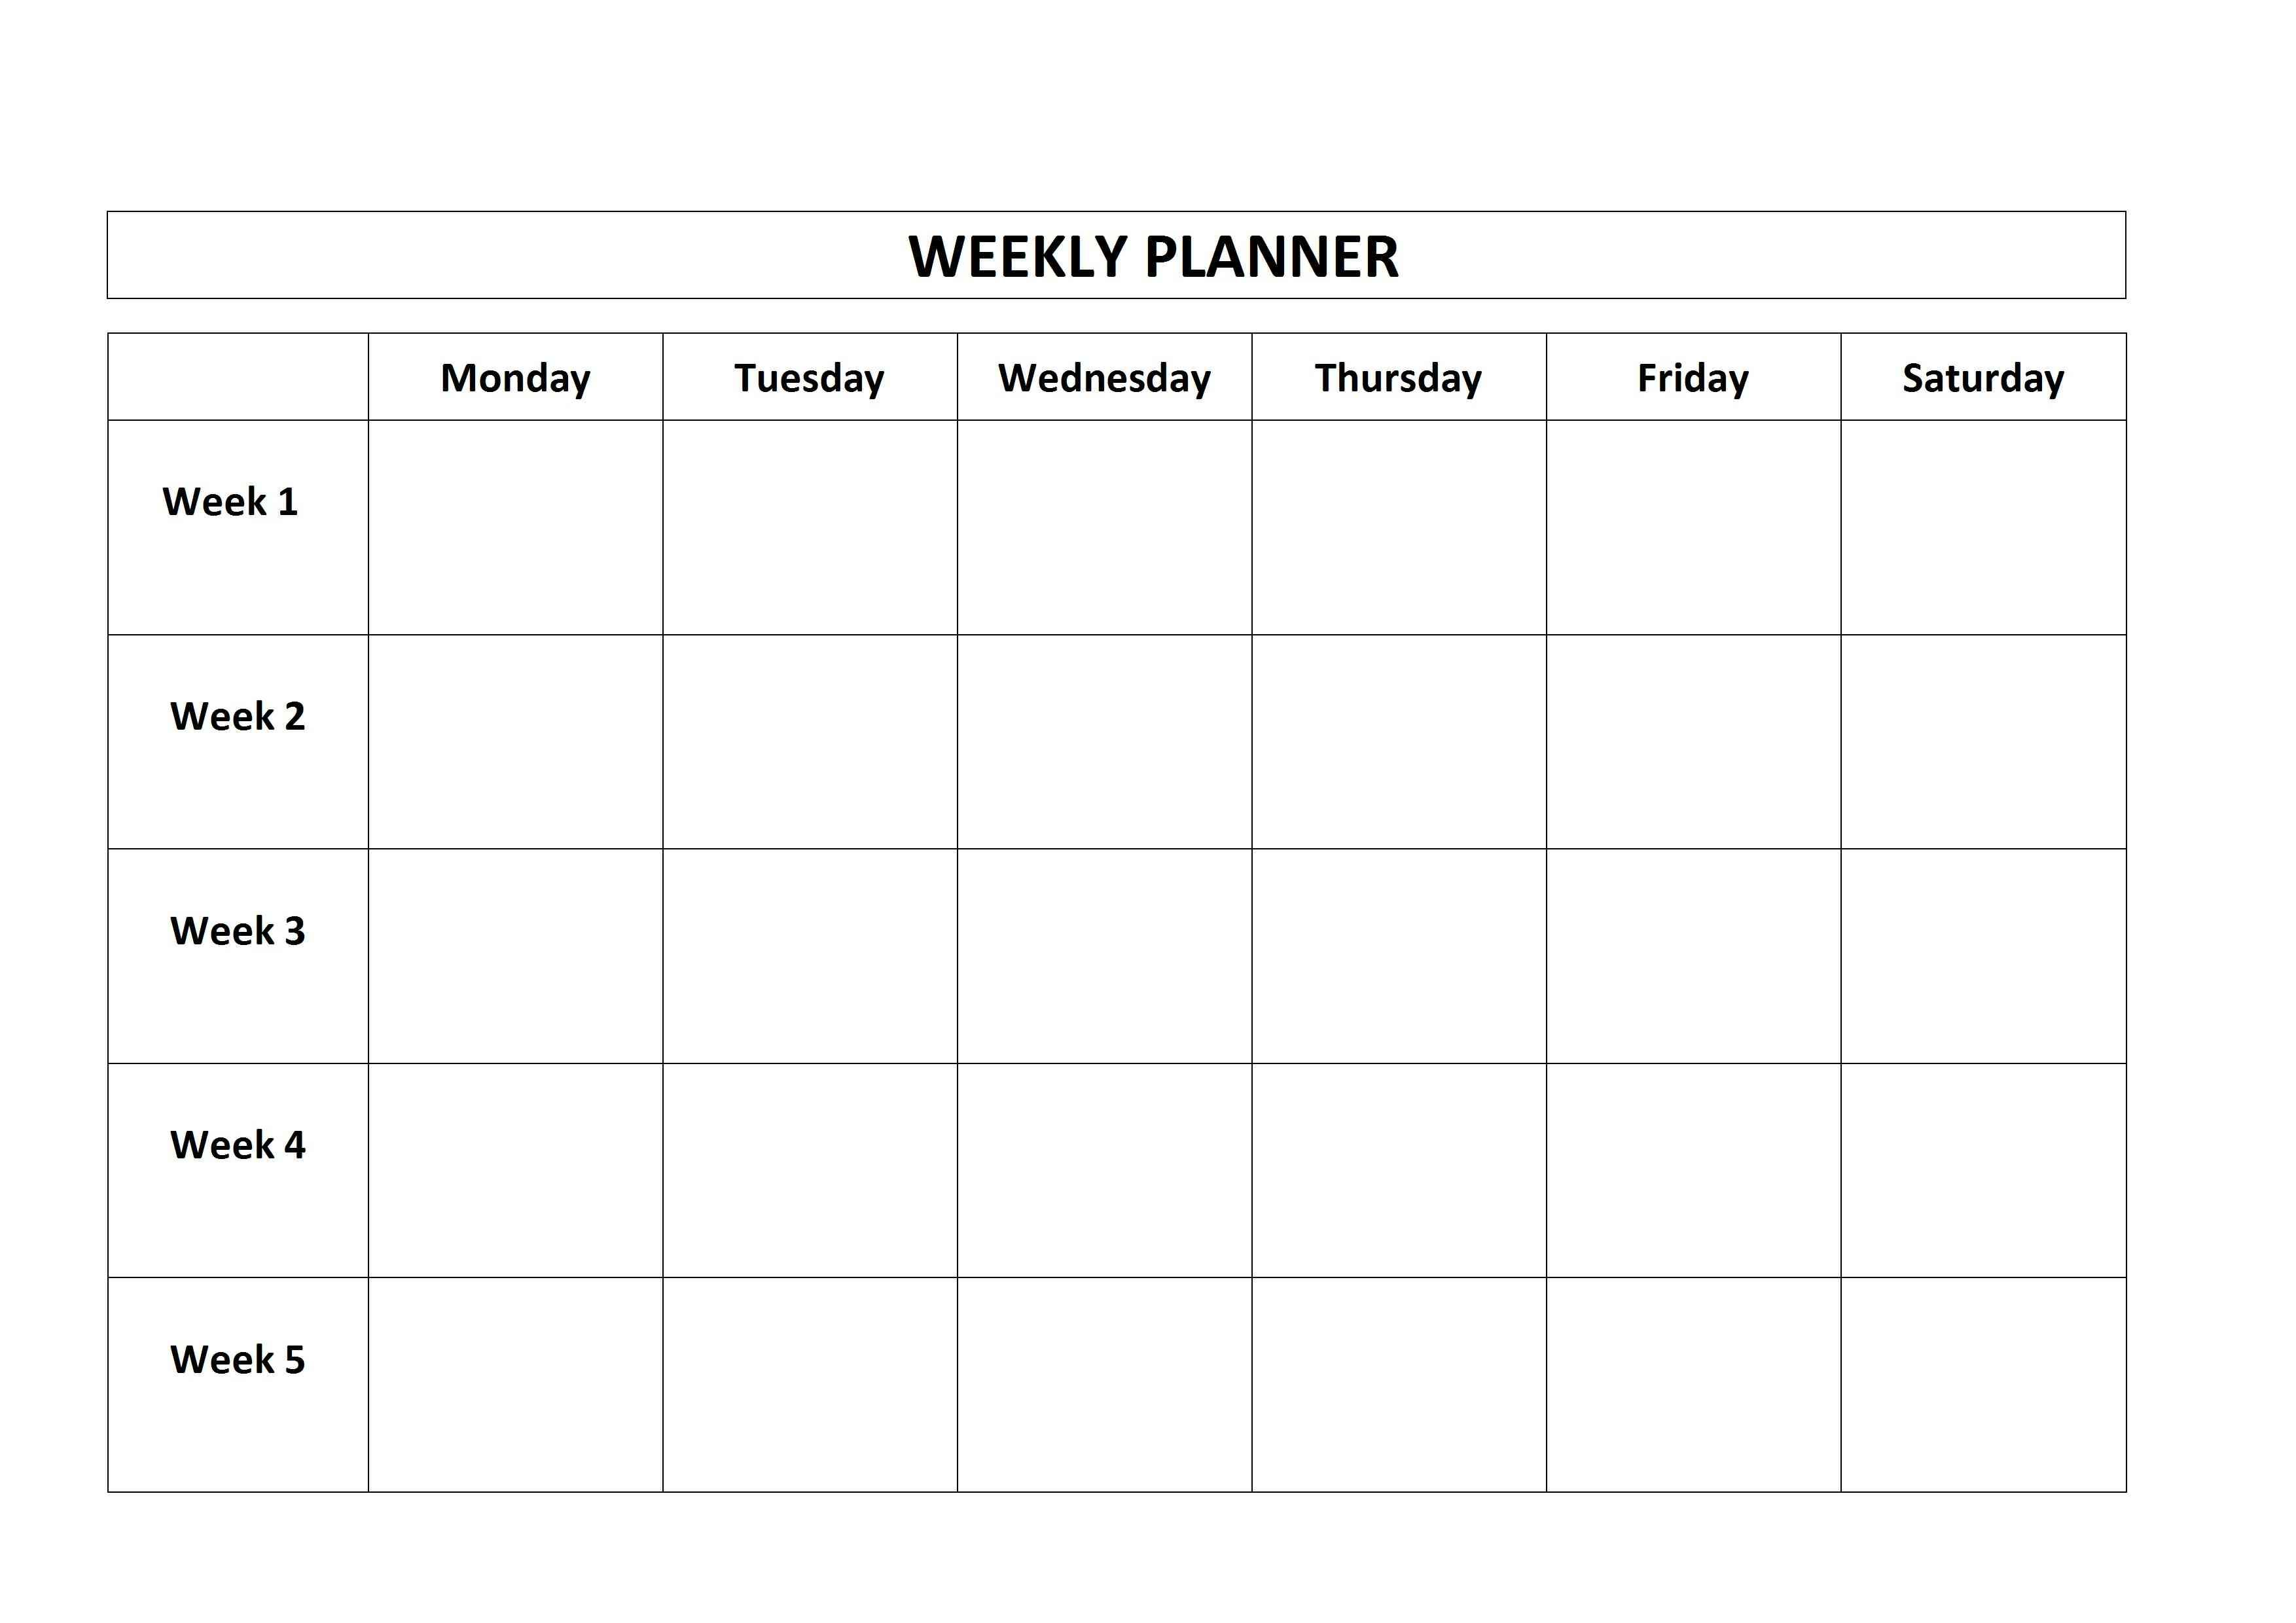 Free Printable Weekly Planner Monday Friday School Calendar On – Free Printable Weekly Planner